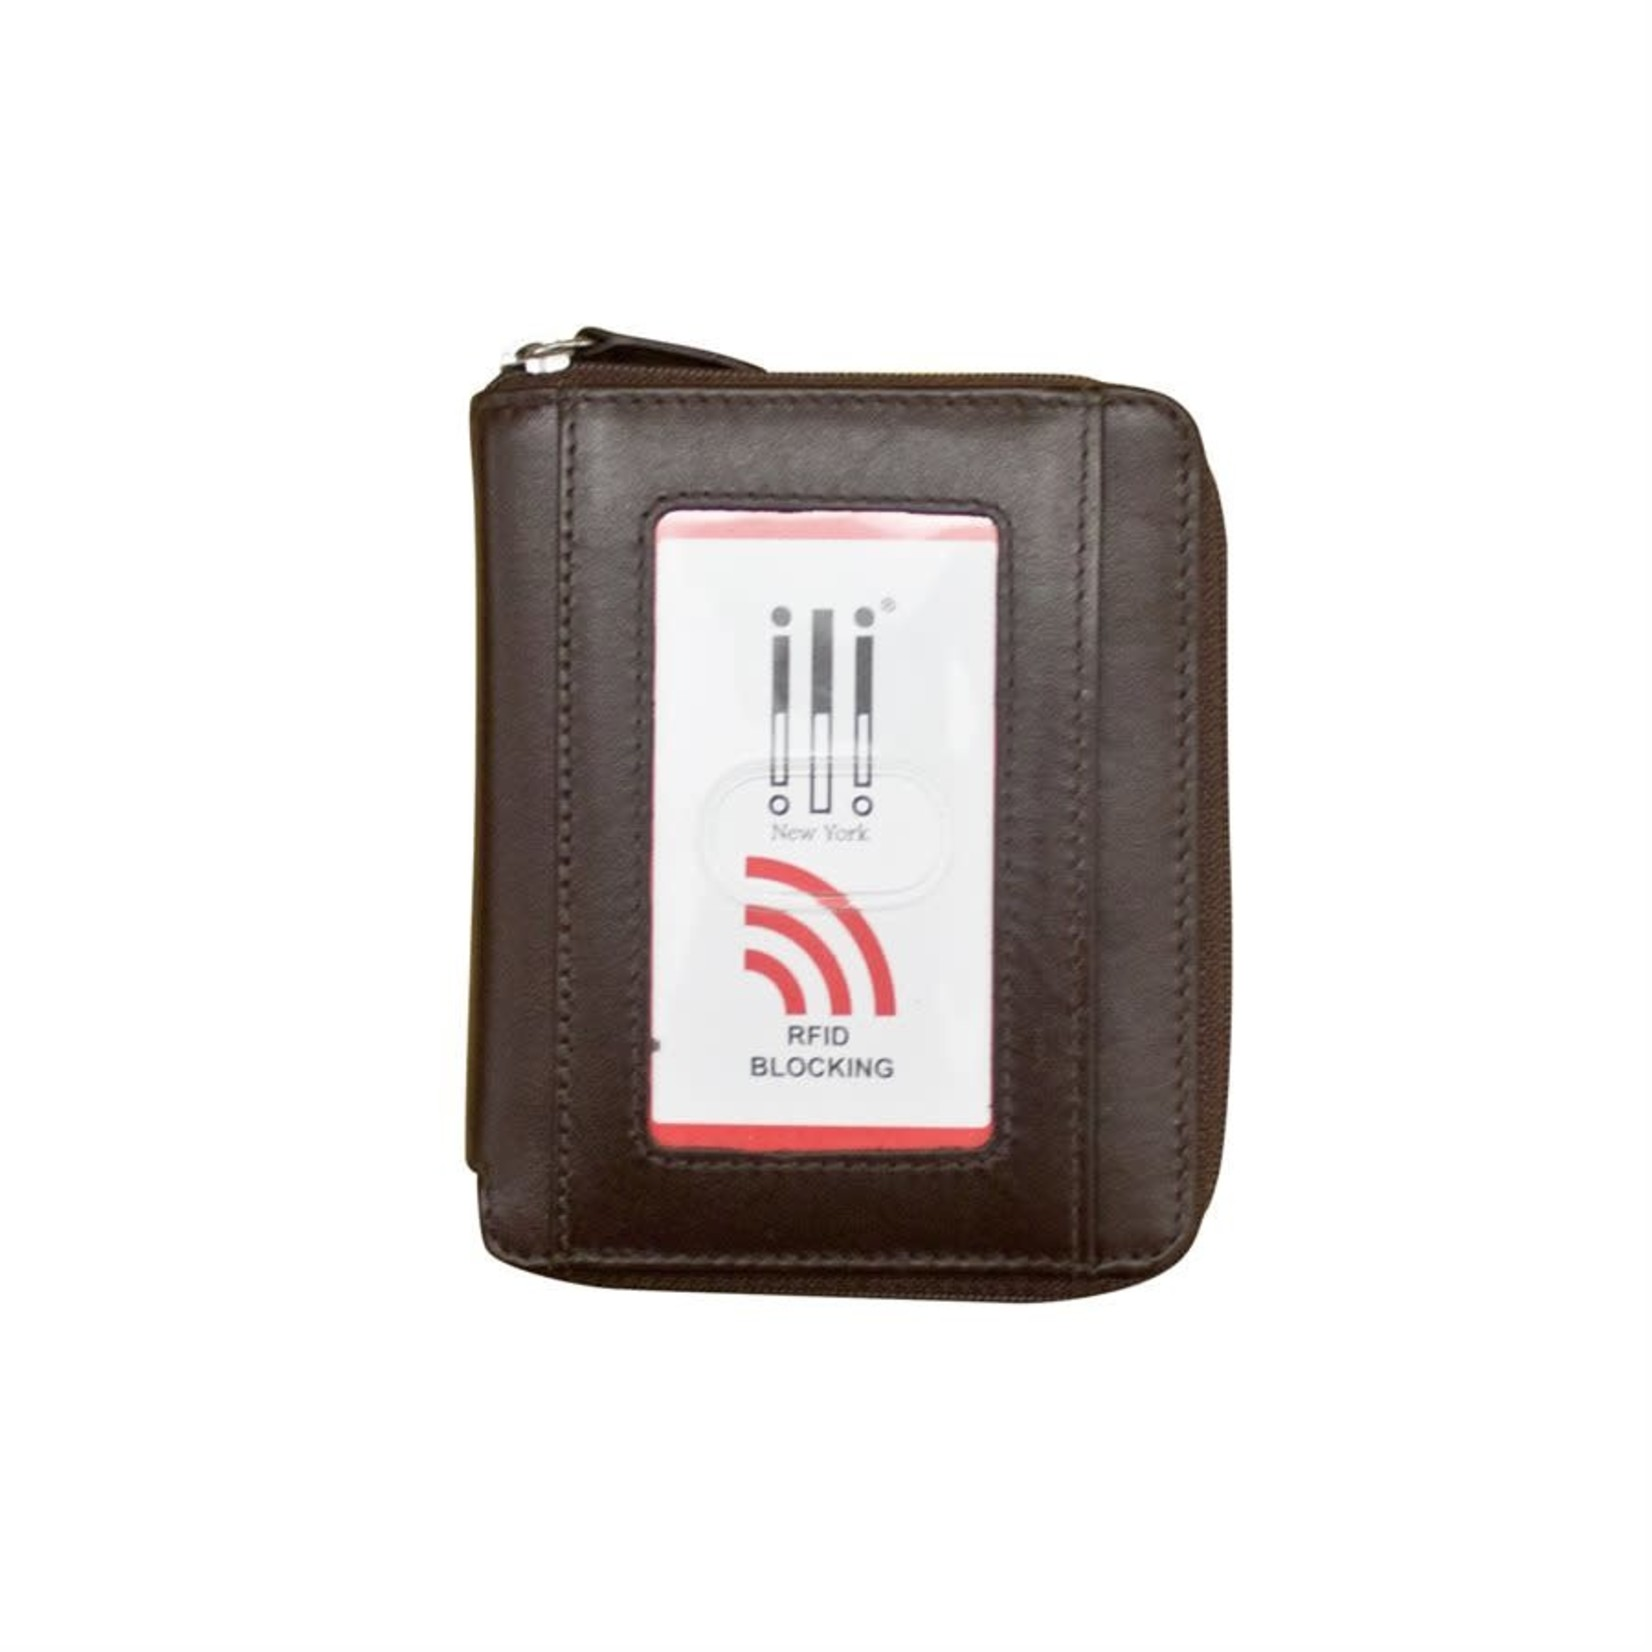 Leather Handbags and Accessories 7859 Brown - RFID Zip Around Wallet